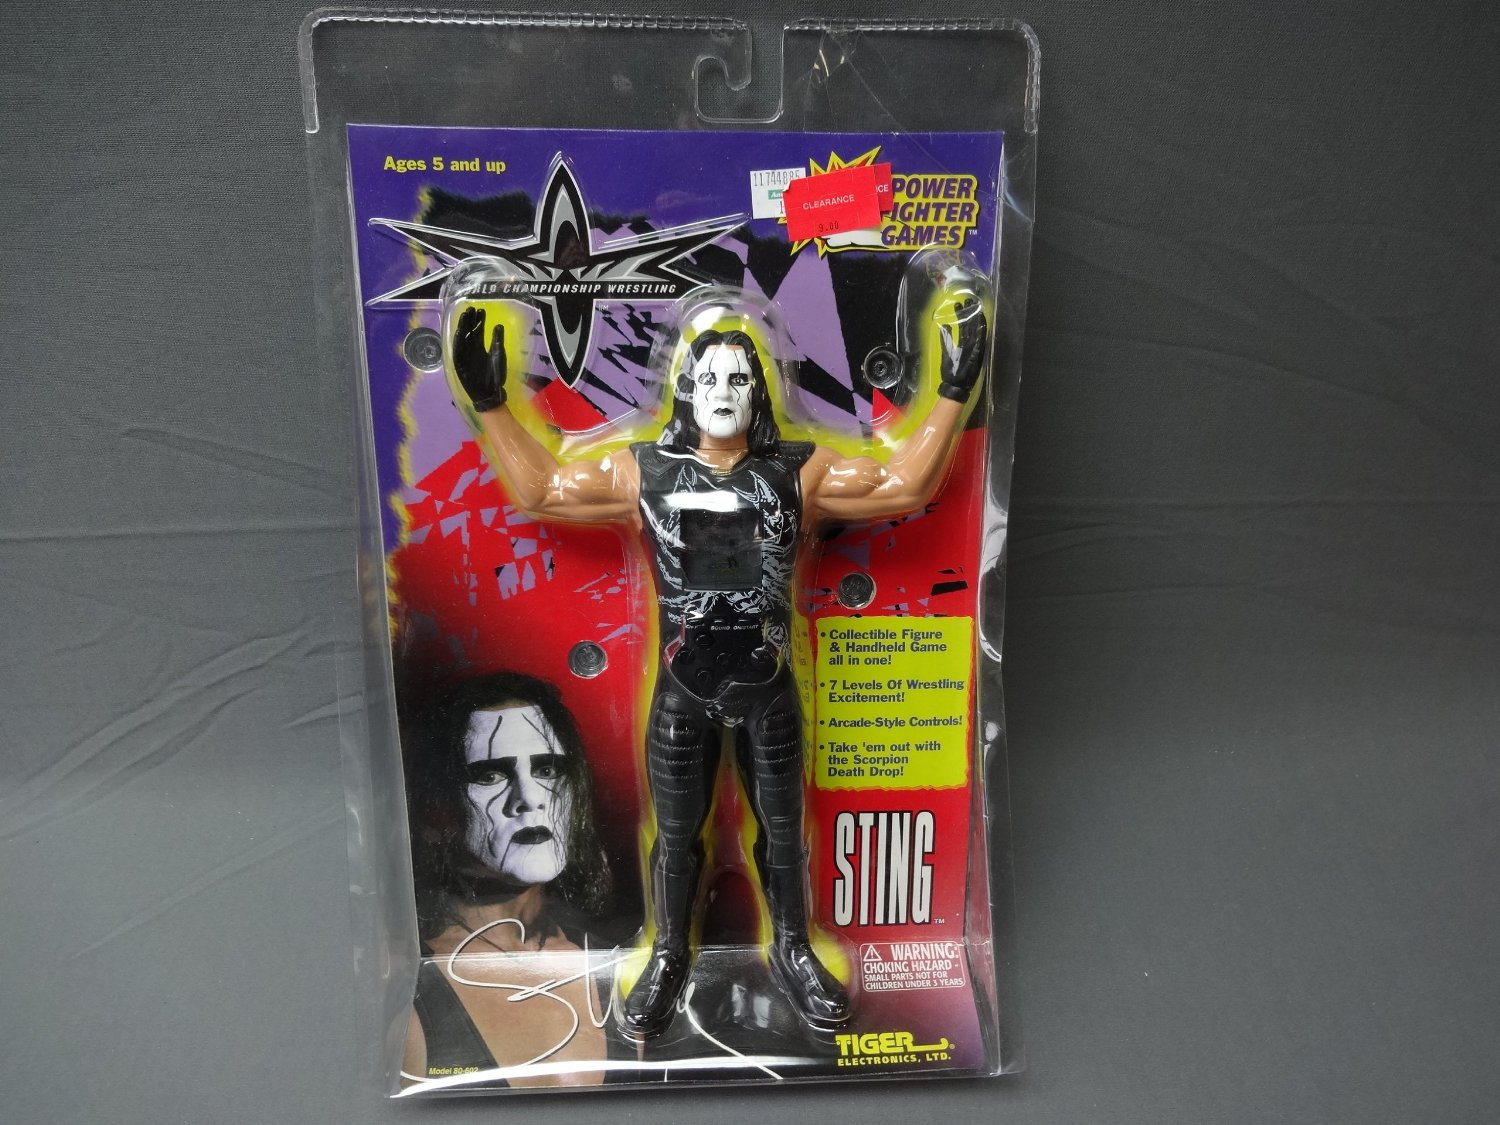 WCW Power Fighter game Sting 1